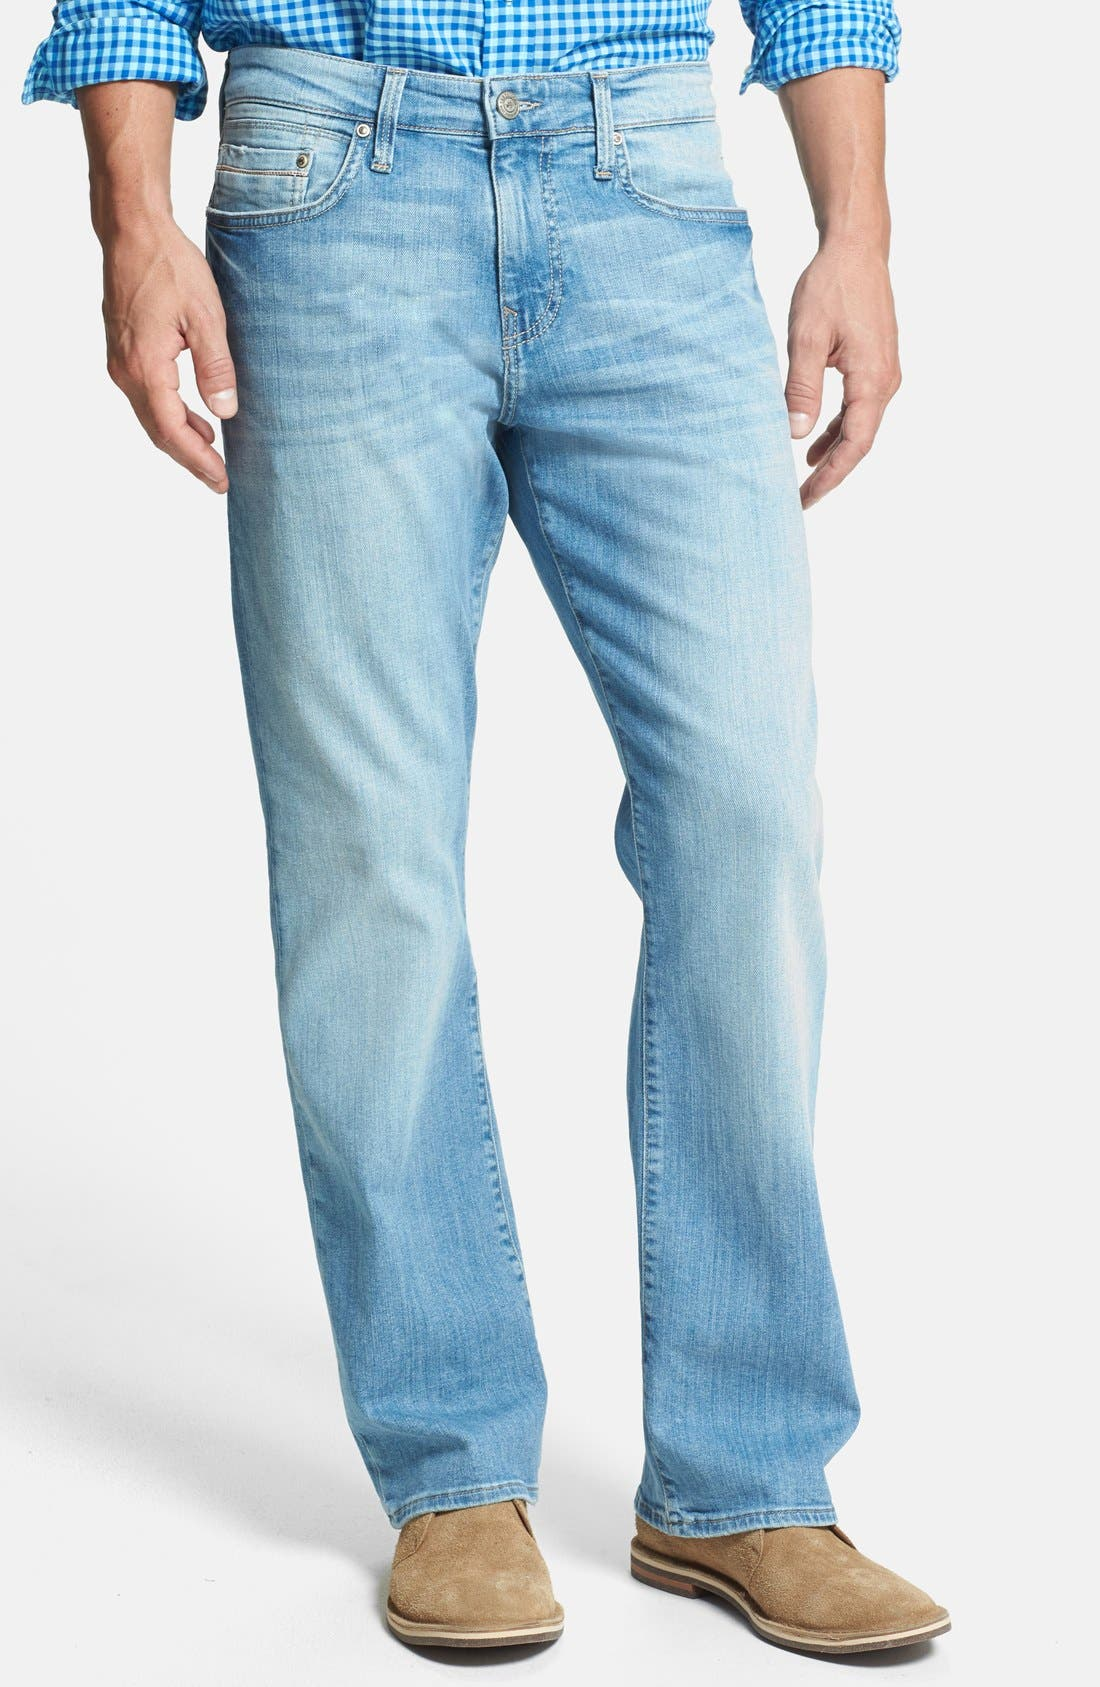 Alternate Image 1 Selected - Mavi Jeans 'Matt' Relaxed Fit Jeans (Light Yaletown)